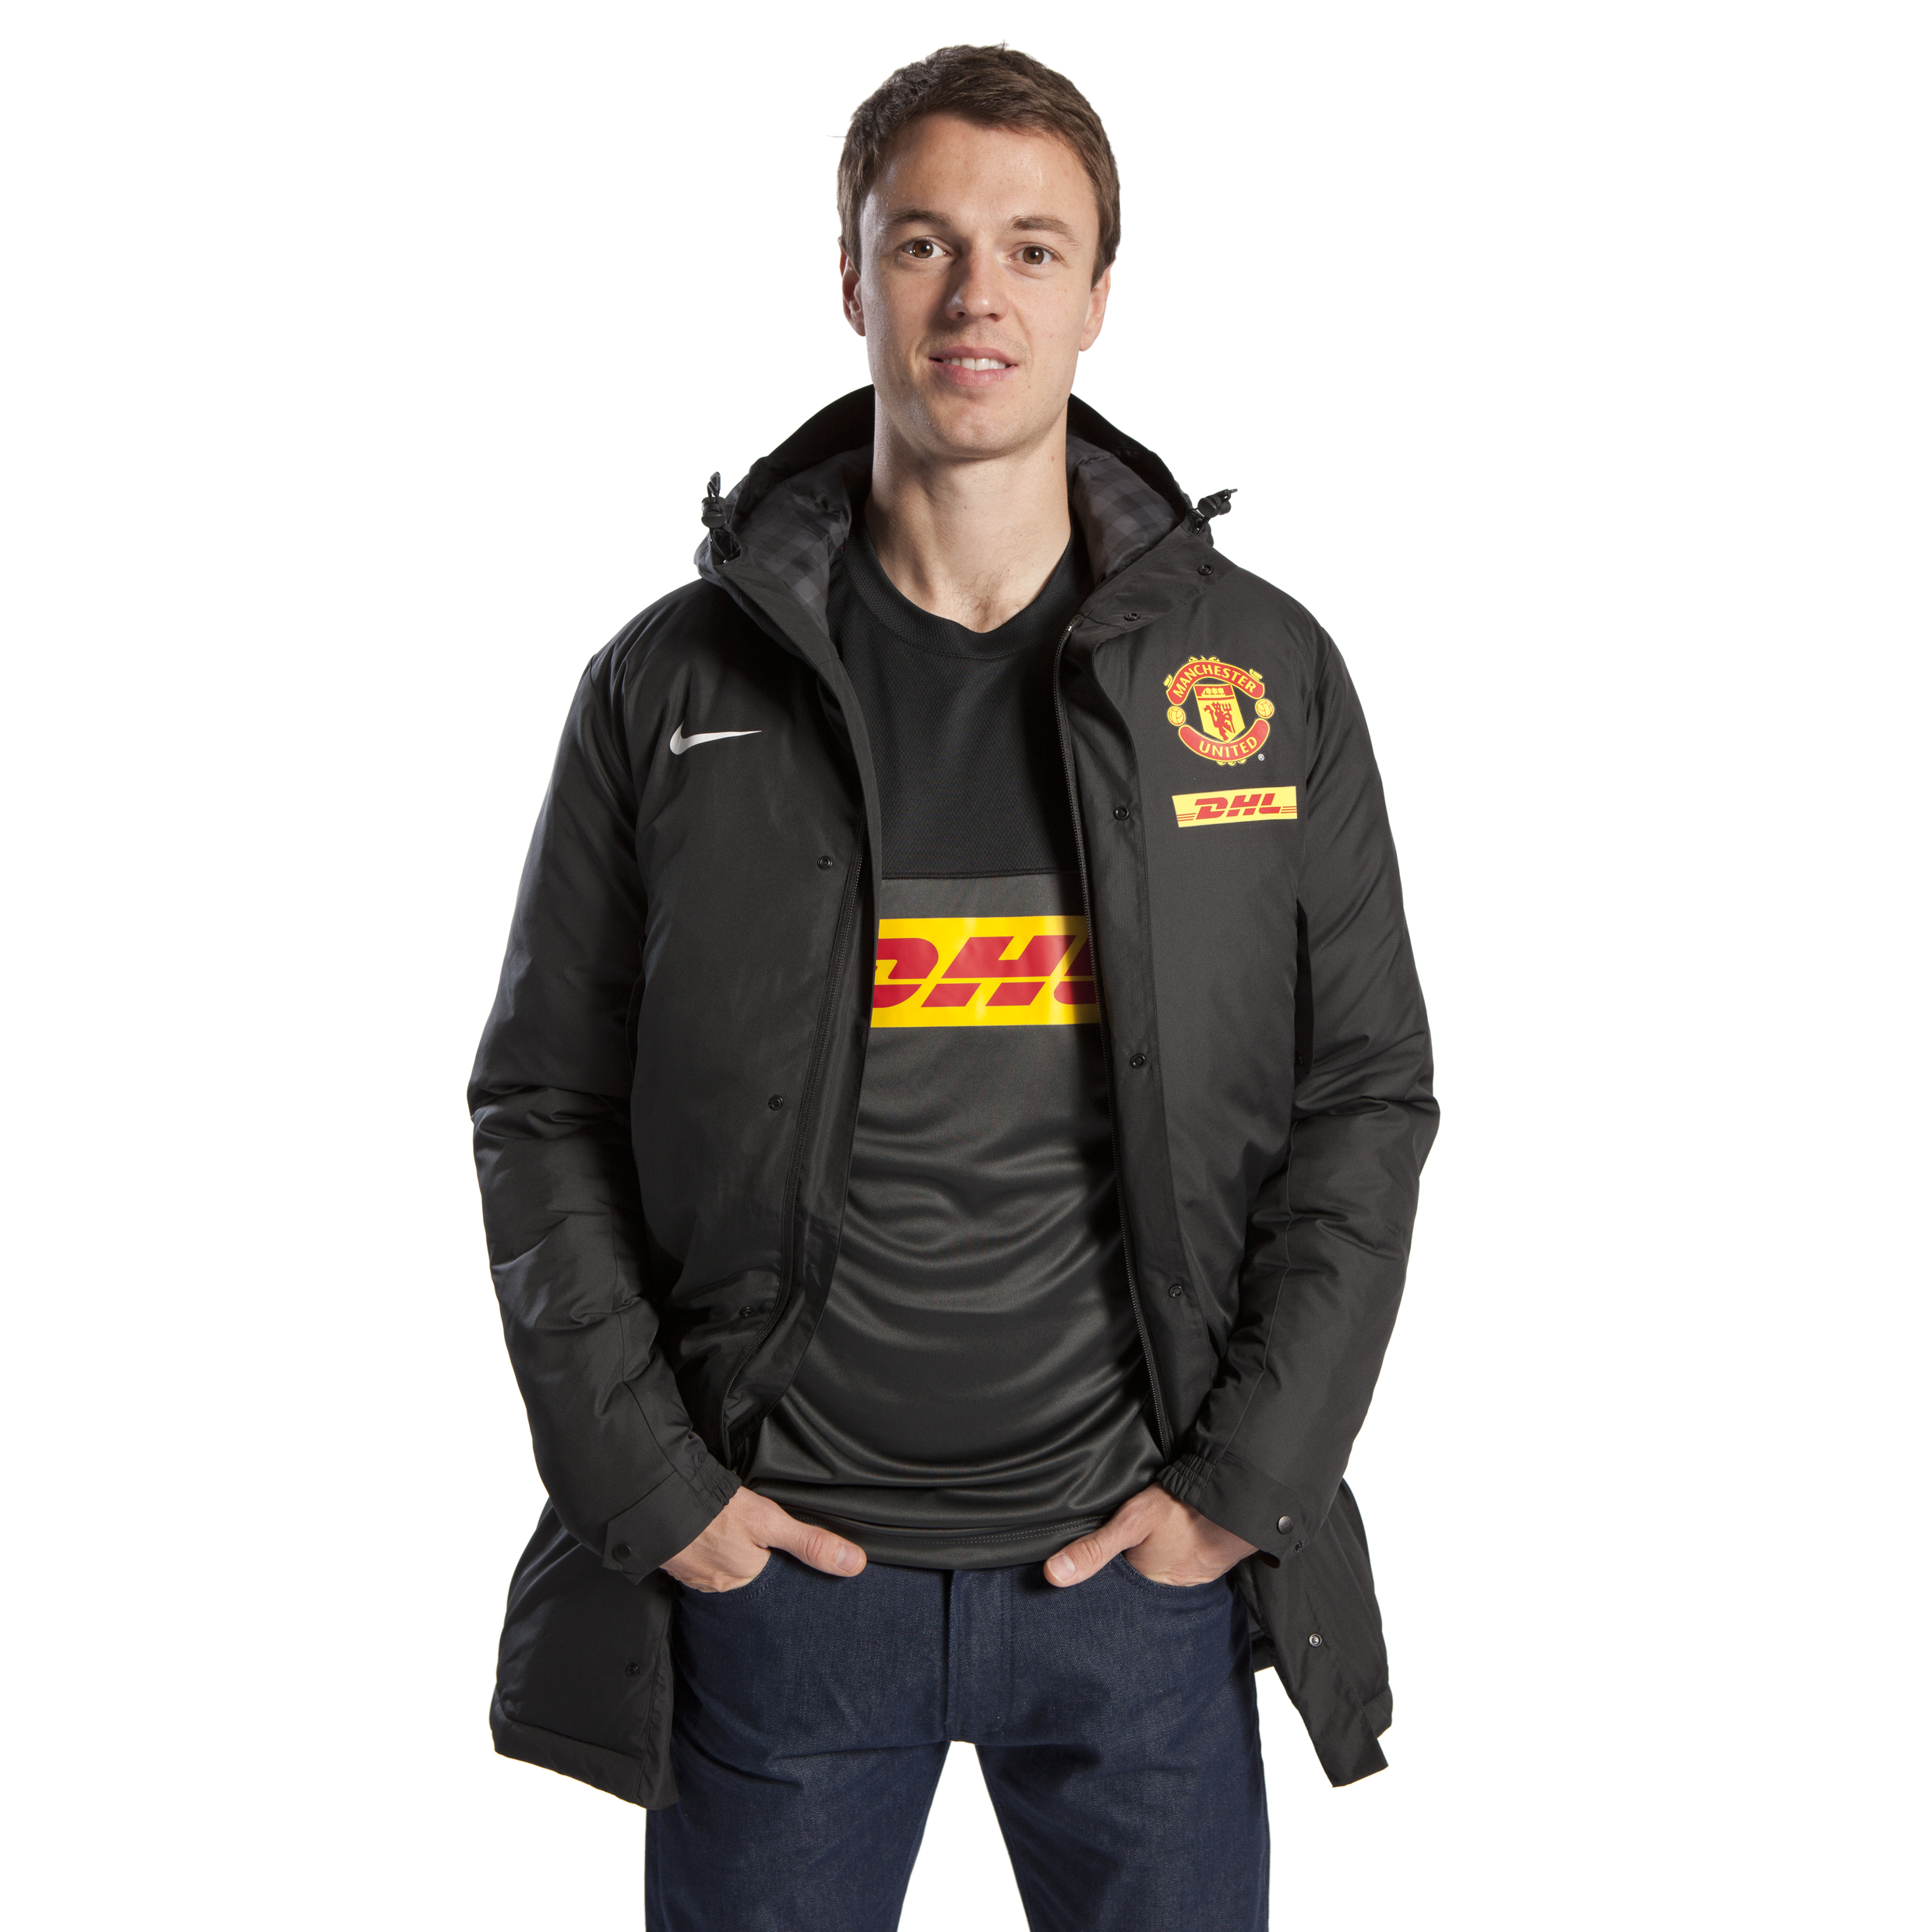 Manchester United Parka Jacket - Black/White